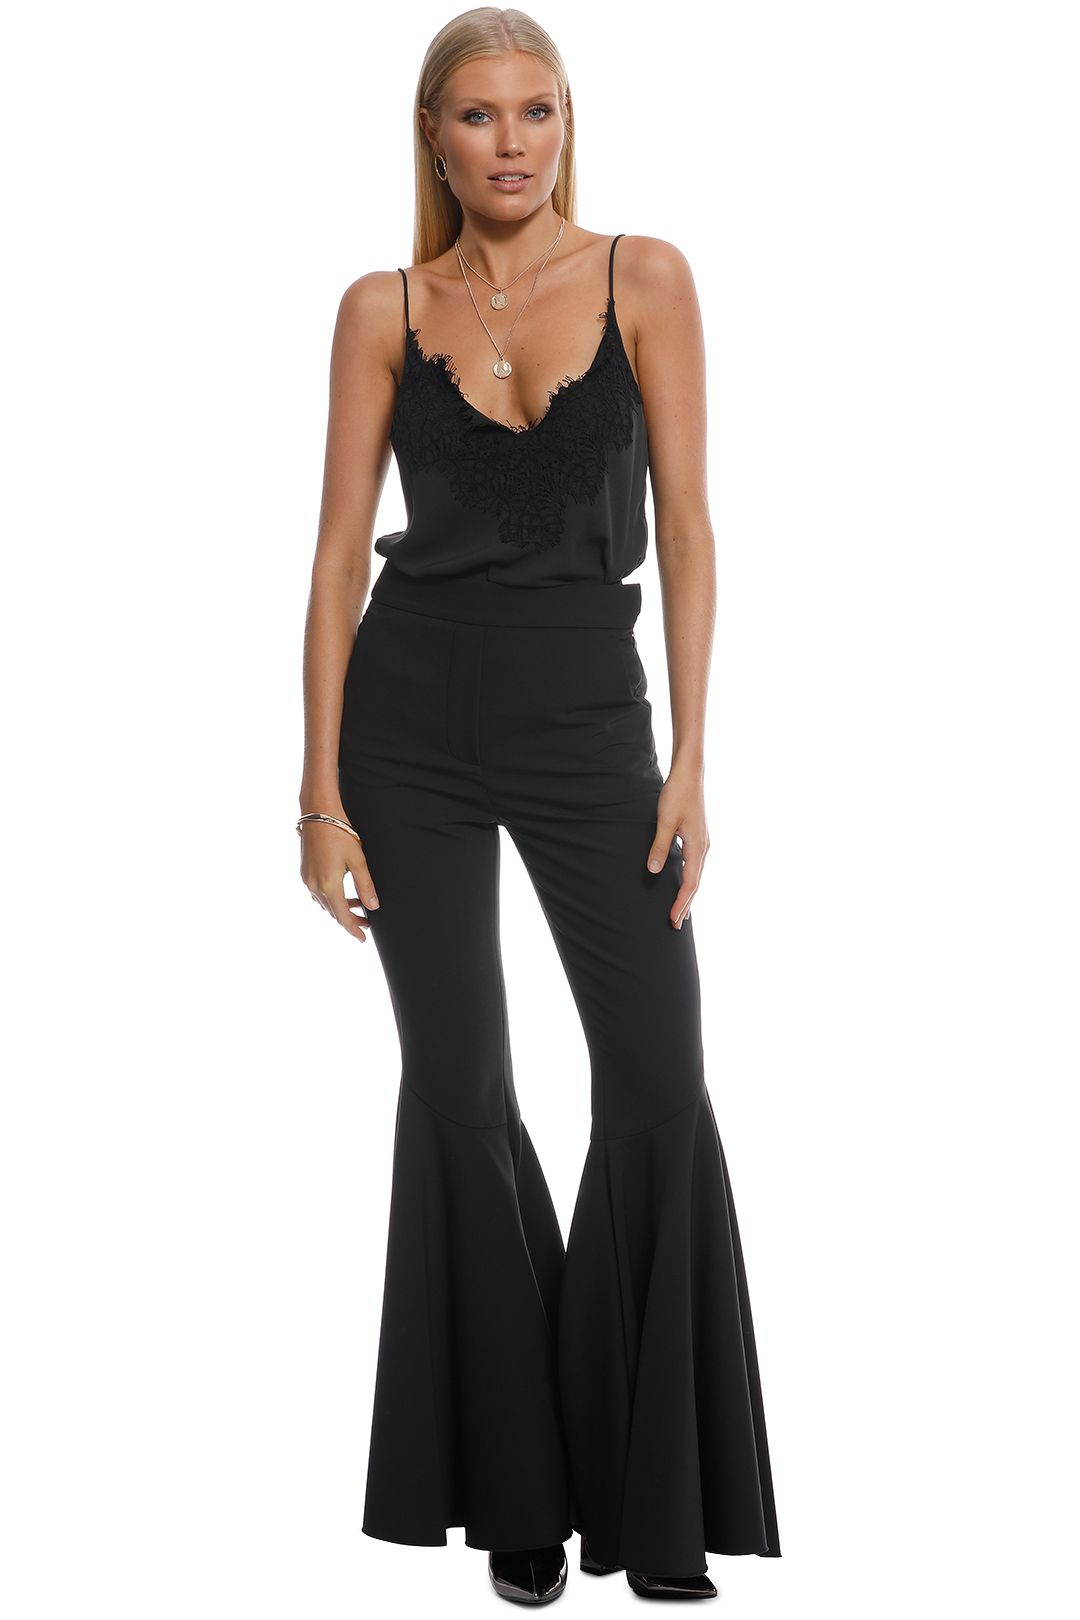 Ellery - Jacuzzi Extra Wide Wool Flare Pants - Black - Front